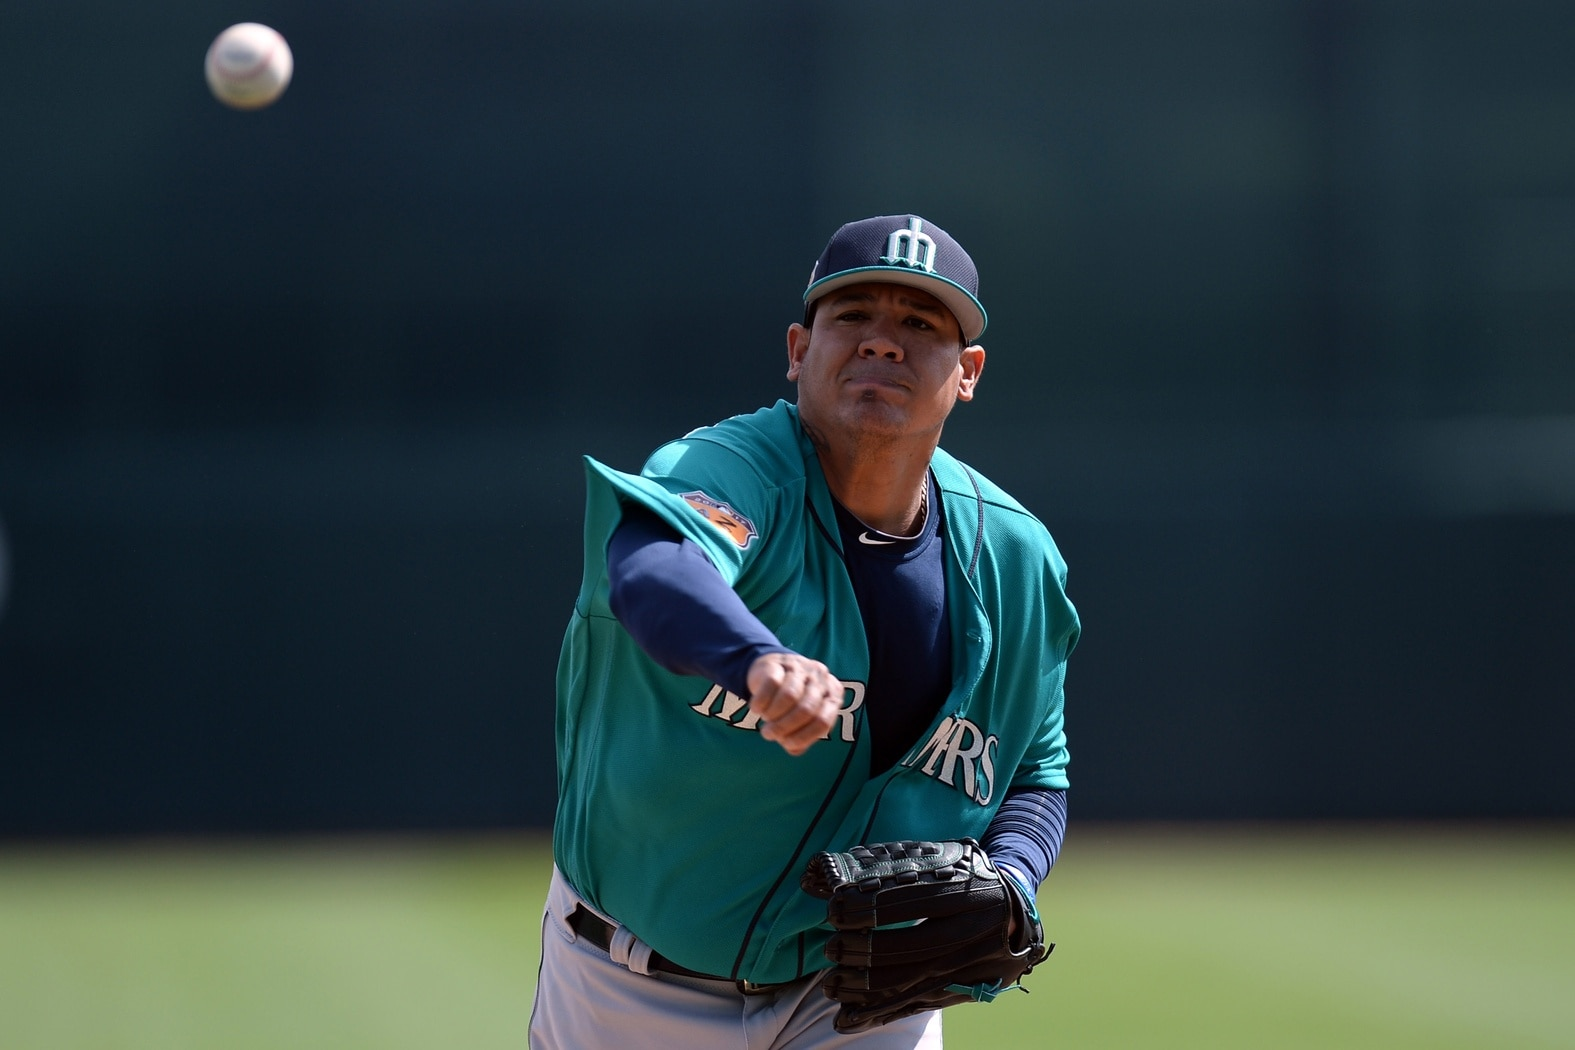 Feb 28, 2017; Phoenix, AZ, USA; Seattle Mariners starting pitcher Felix Hernandez (34) pitches in the first inning against the Chicago White Sox at Camelback Ranch. Mandatory Credit: